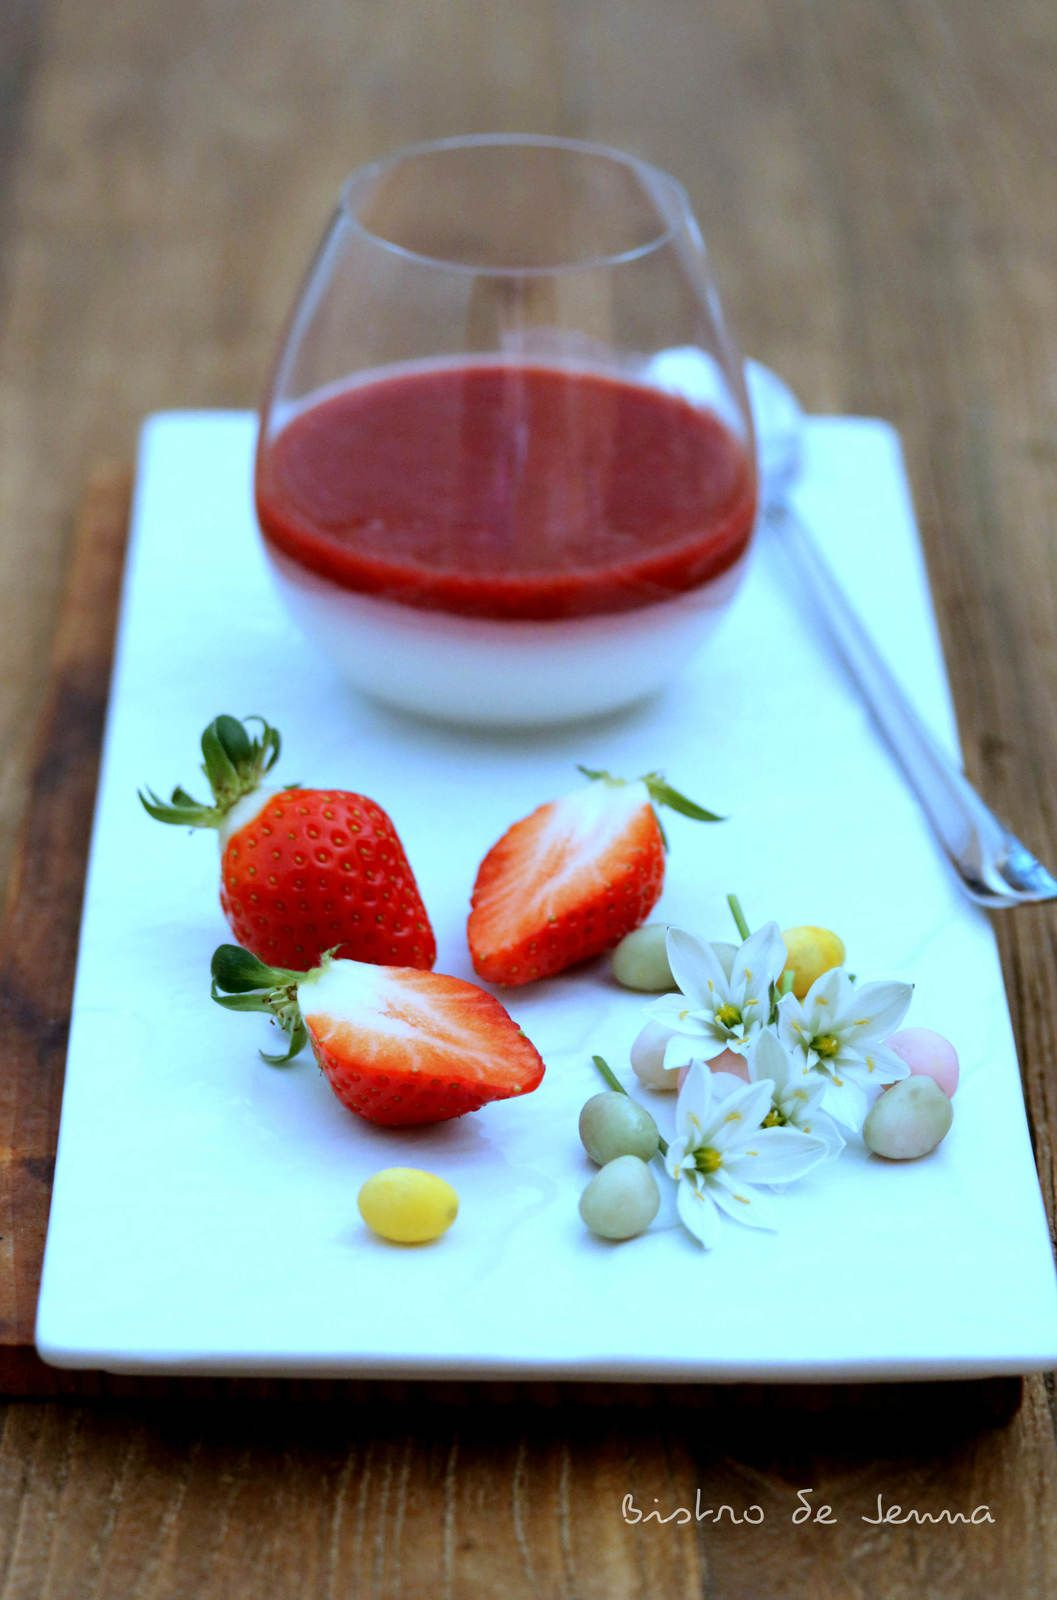 Panna cotta végétale - coulis de fruits rouge